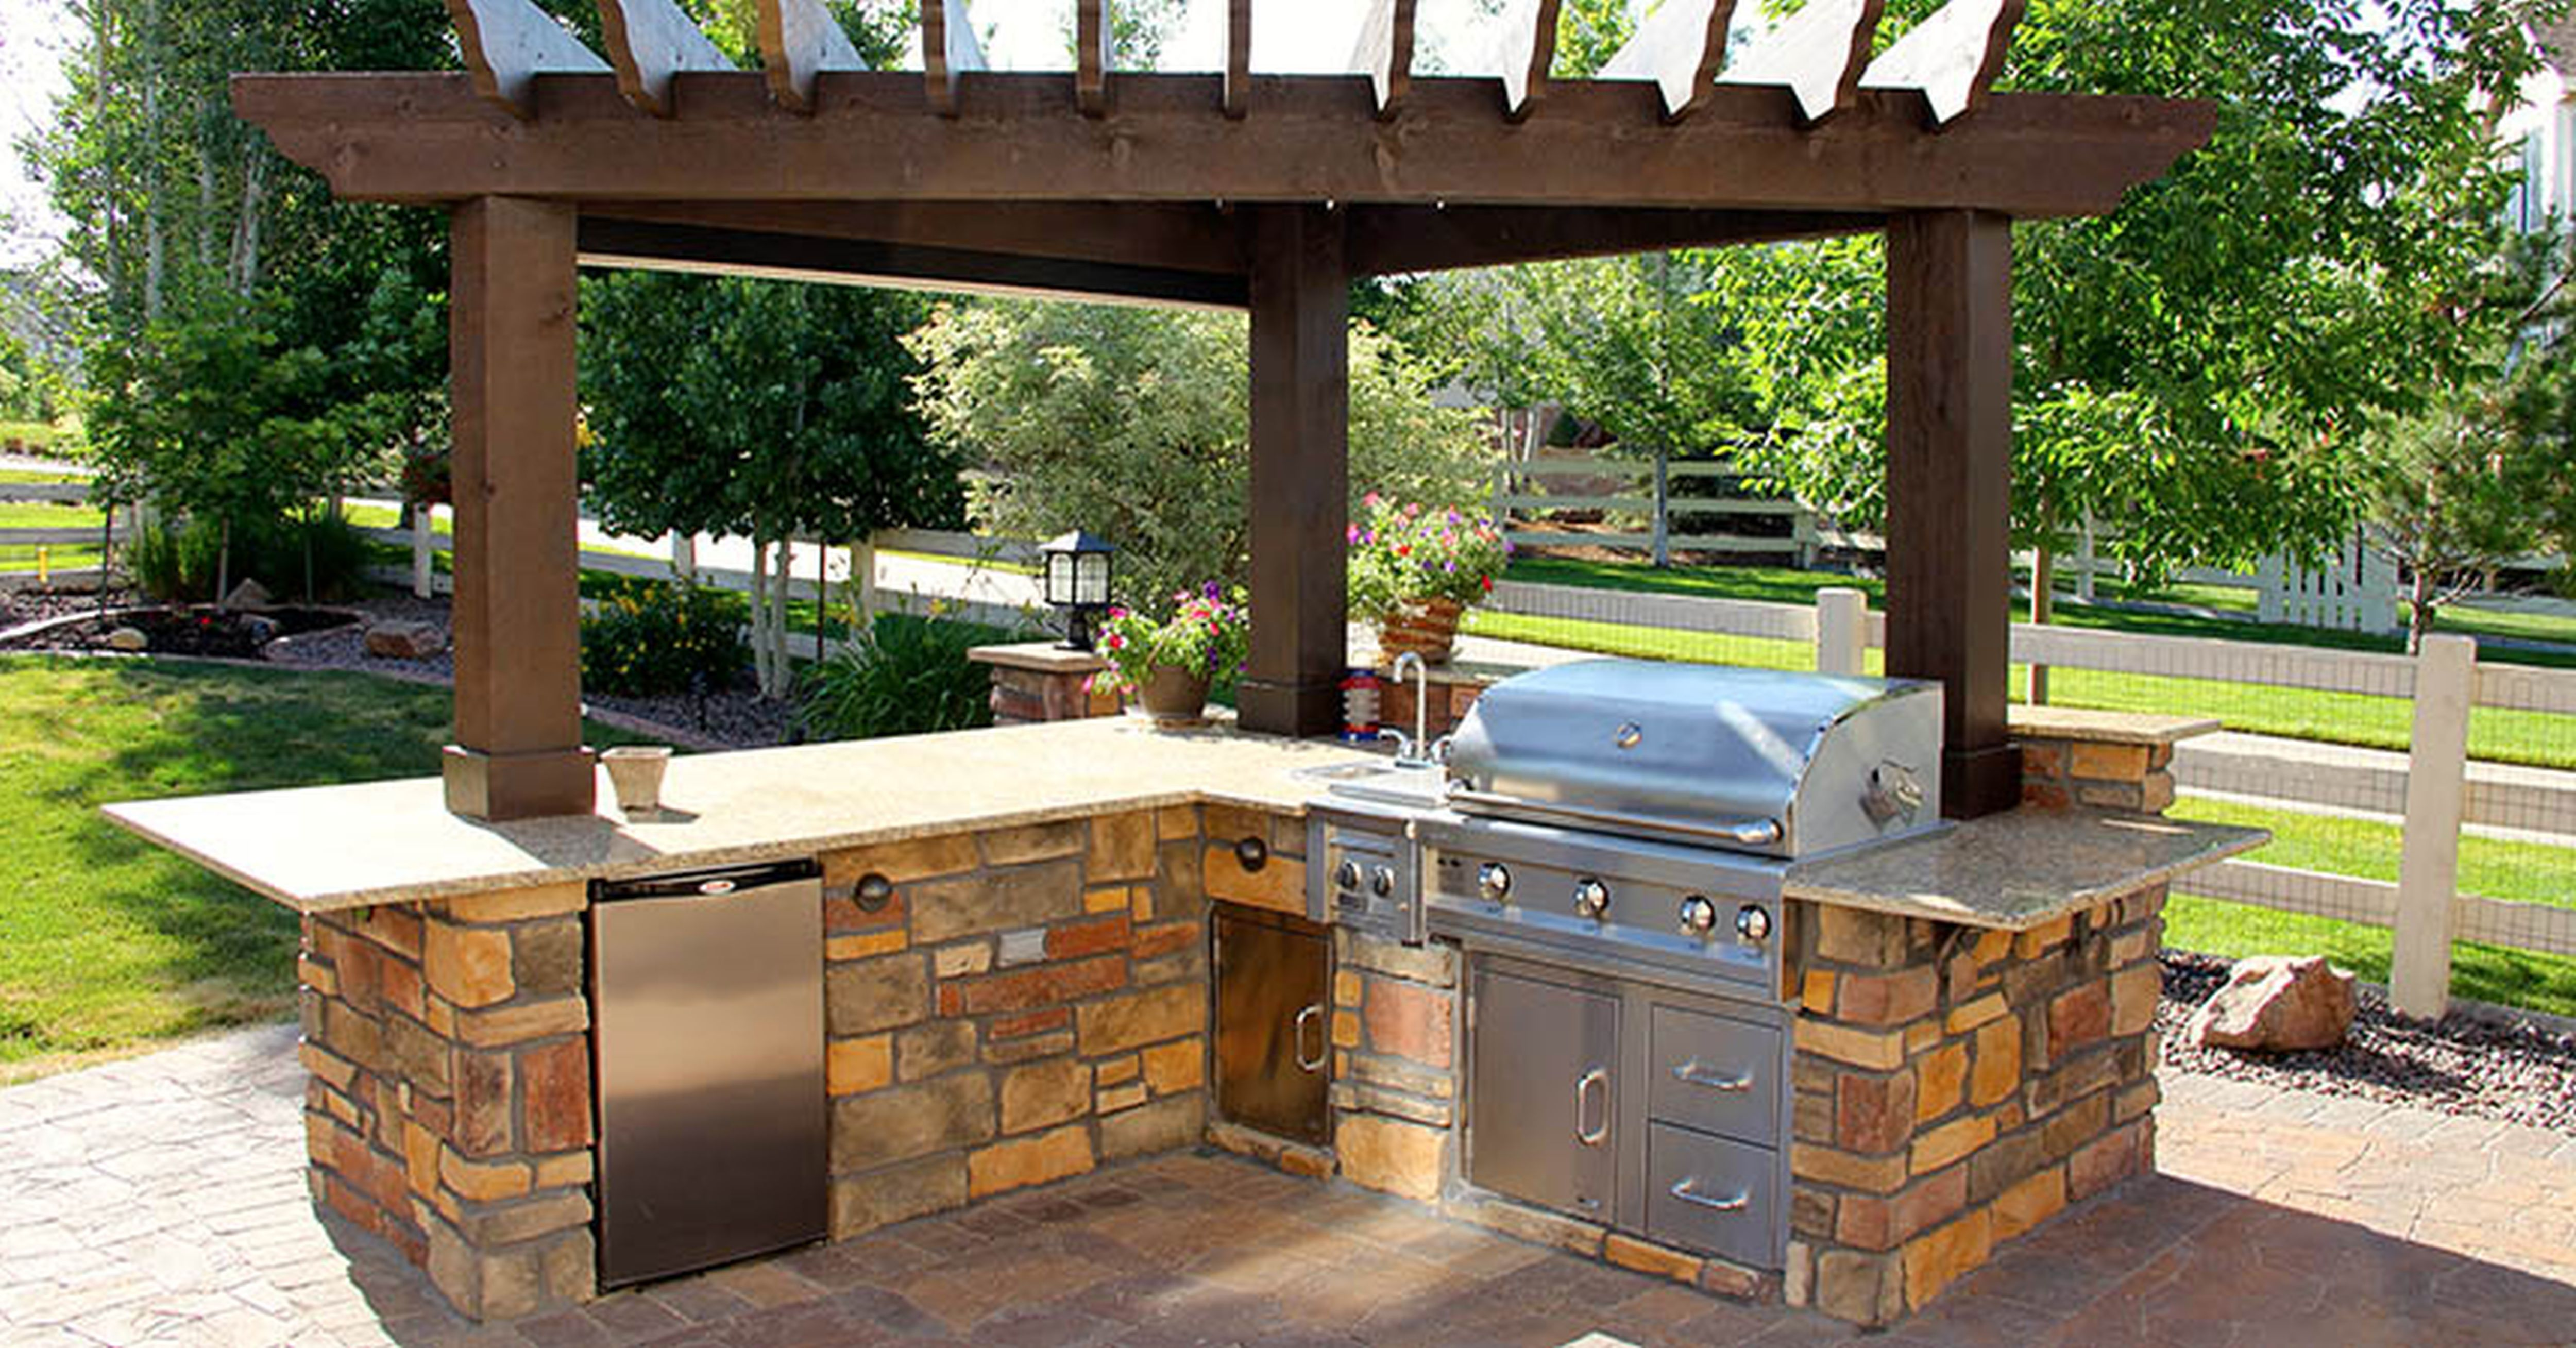 Simple Wooden Pergola for Minimalist Outdoor Kitchen Plans with Stone Counter and Glossy Barbeque Set